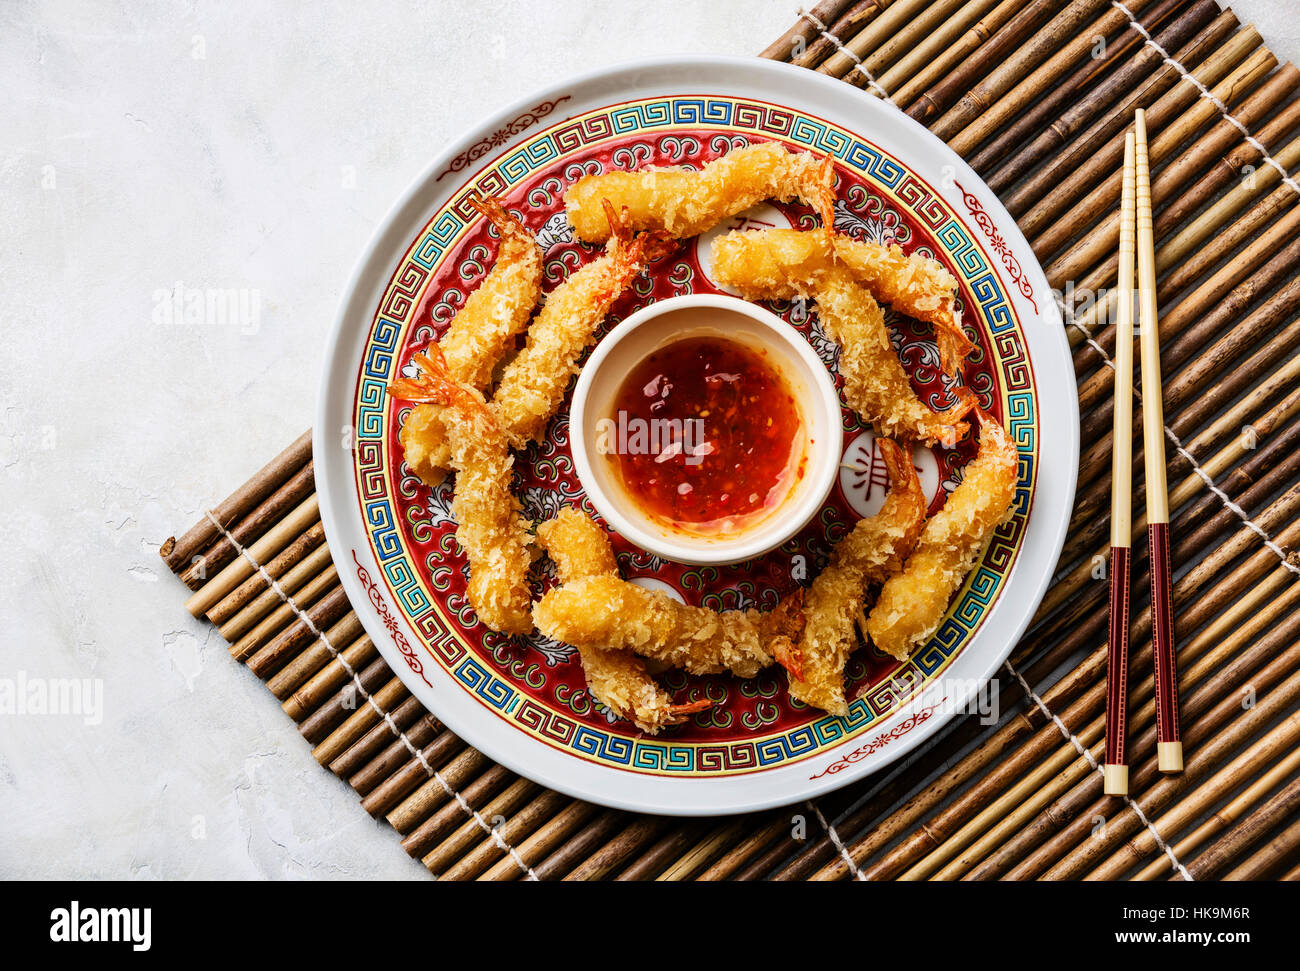 Deep fried breaded Tempura prawn shrimps with sauce on bamboo background - Stock Image